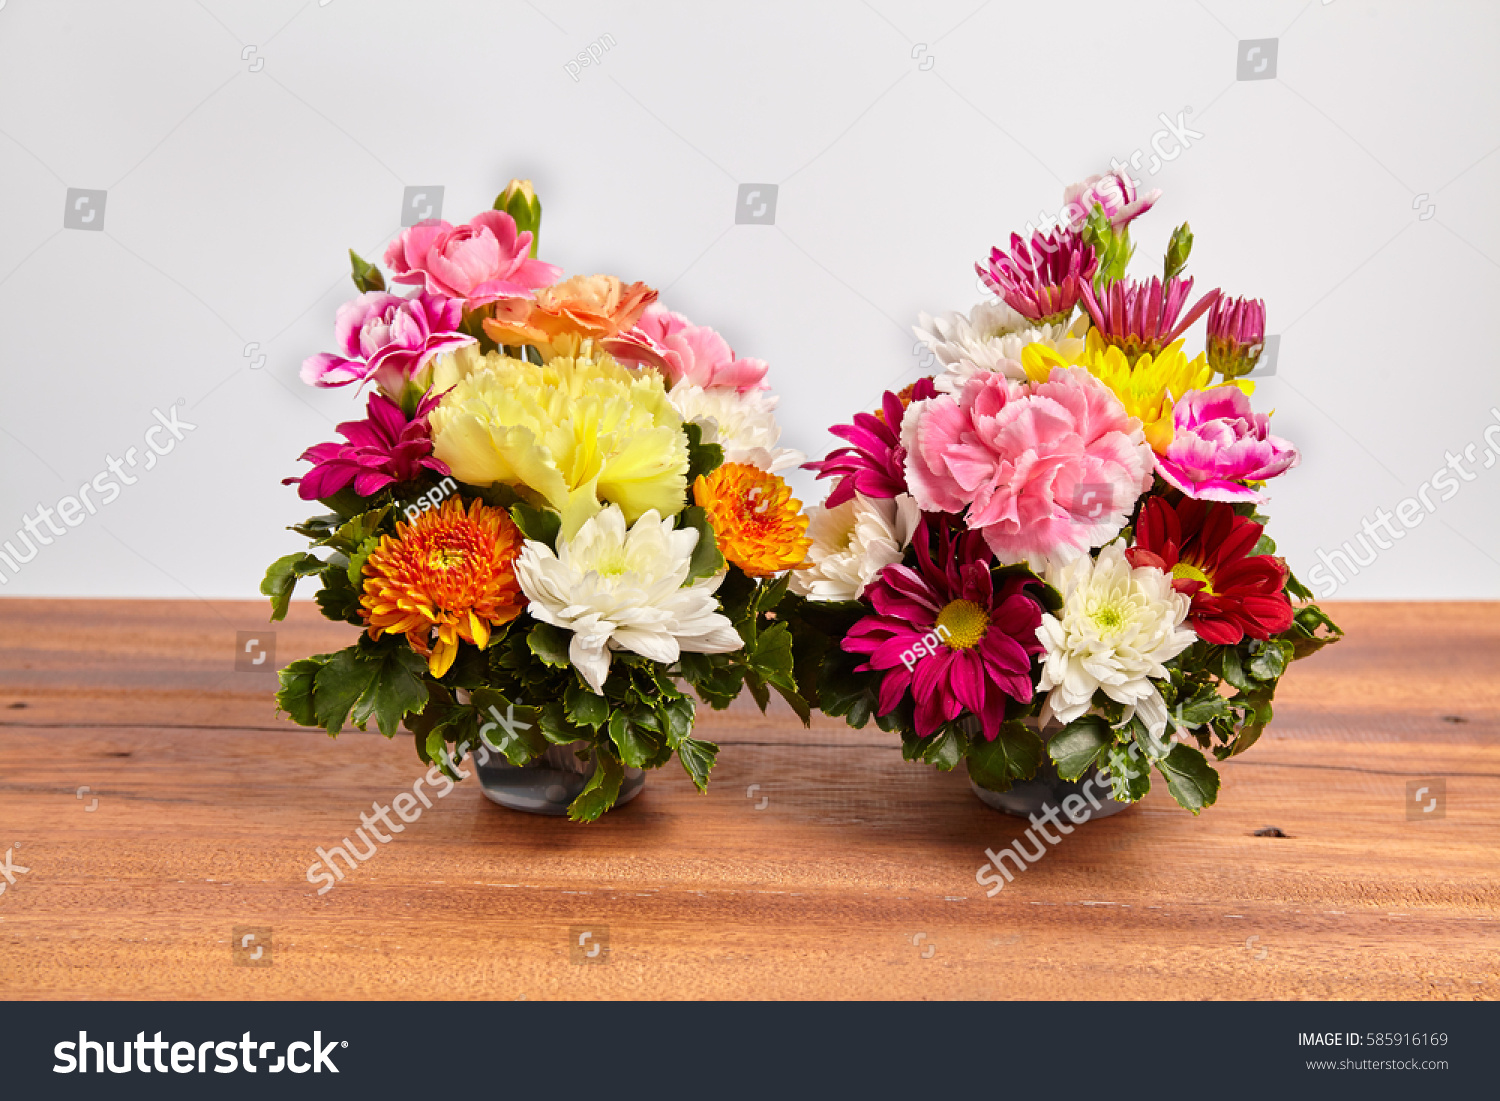 Beautiful bouquet of fresh flowers on wooden table ez canvas id 585916169 izmirmasajfo